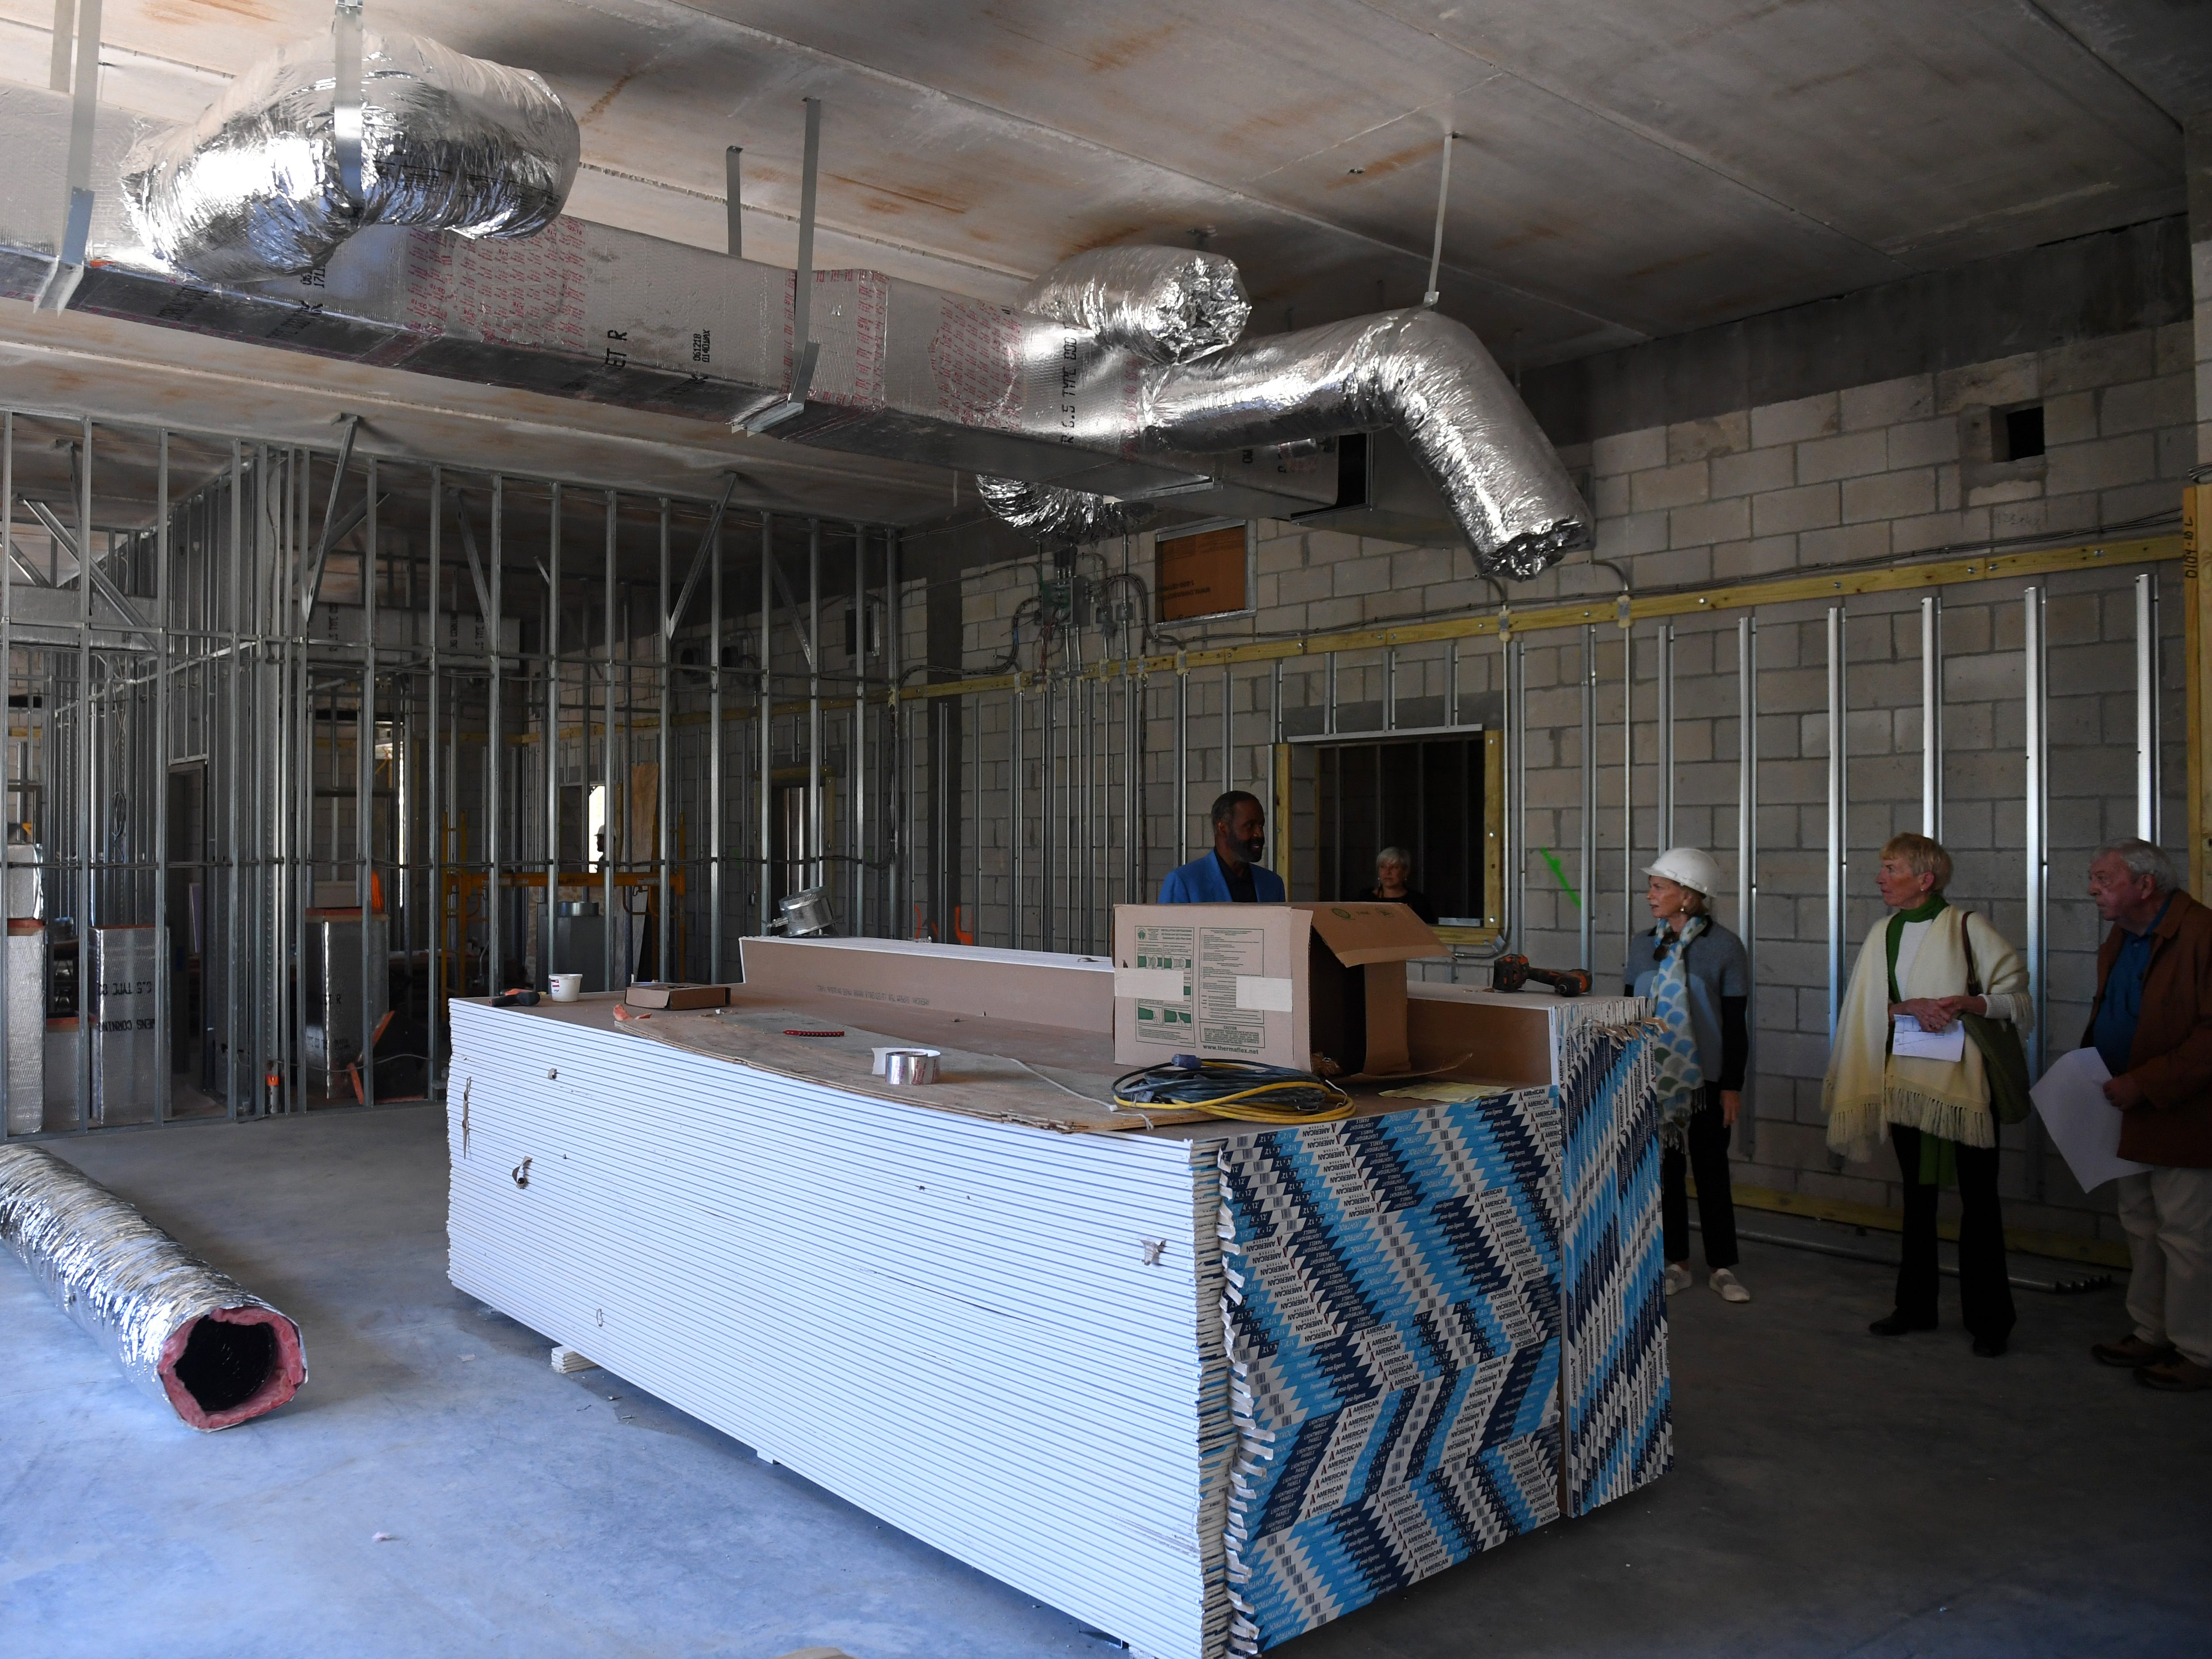 """About 30 people were given a tour of the new expansion of the Gifford Youth Achievement Center on Thursday, Jan. 10, 2019 as construction continues. The 14,000-square-foot expansion will add eight multipurpose learning rooms, including a computer lab and two rooms geared toward teenagers. """"The building will be used for our middle and high school after school program that has doubled in population over the last few years,"""" said Angelia Perry, executive director for the center."""